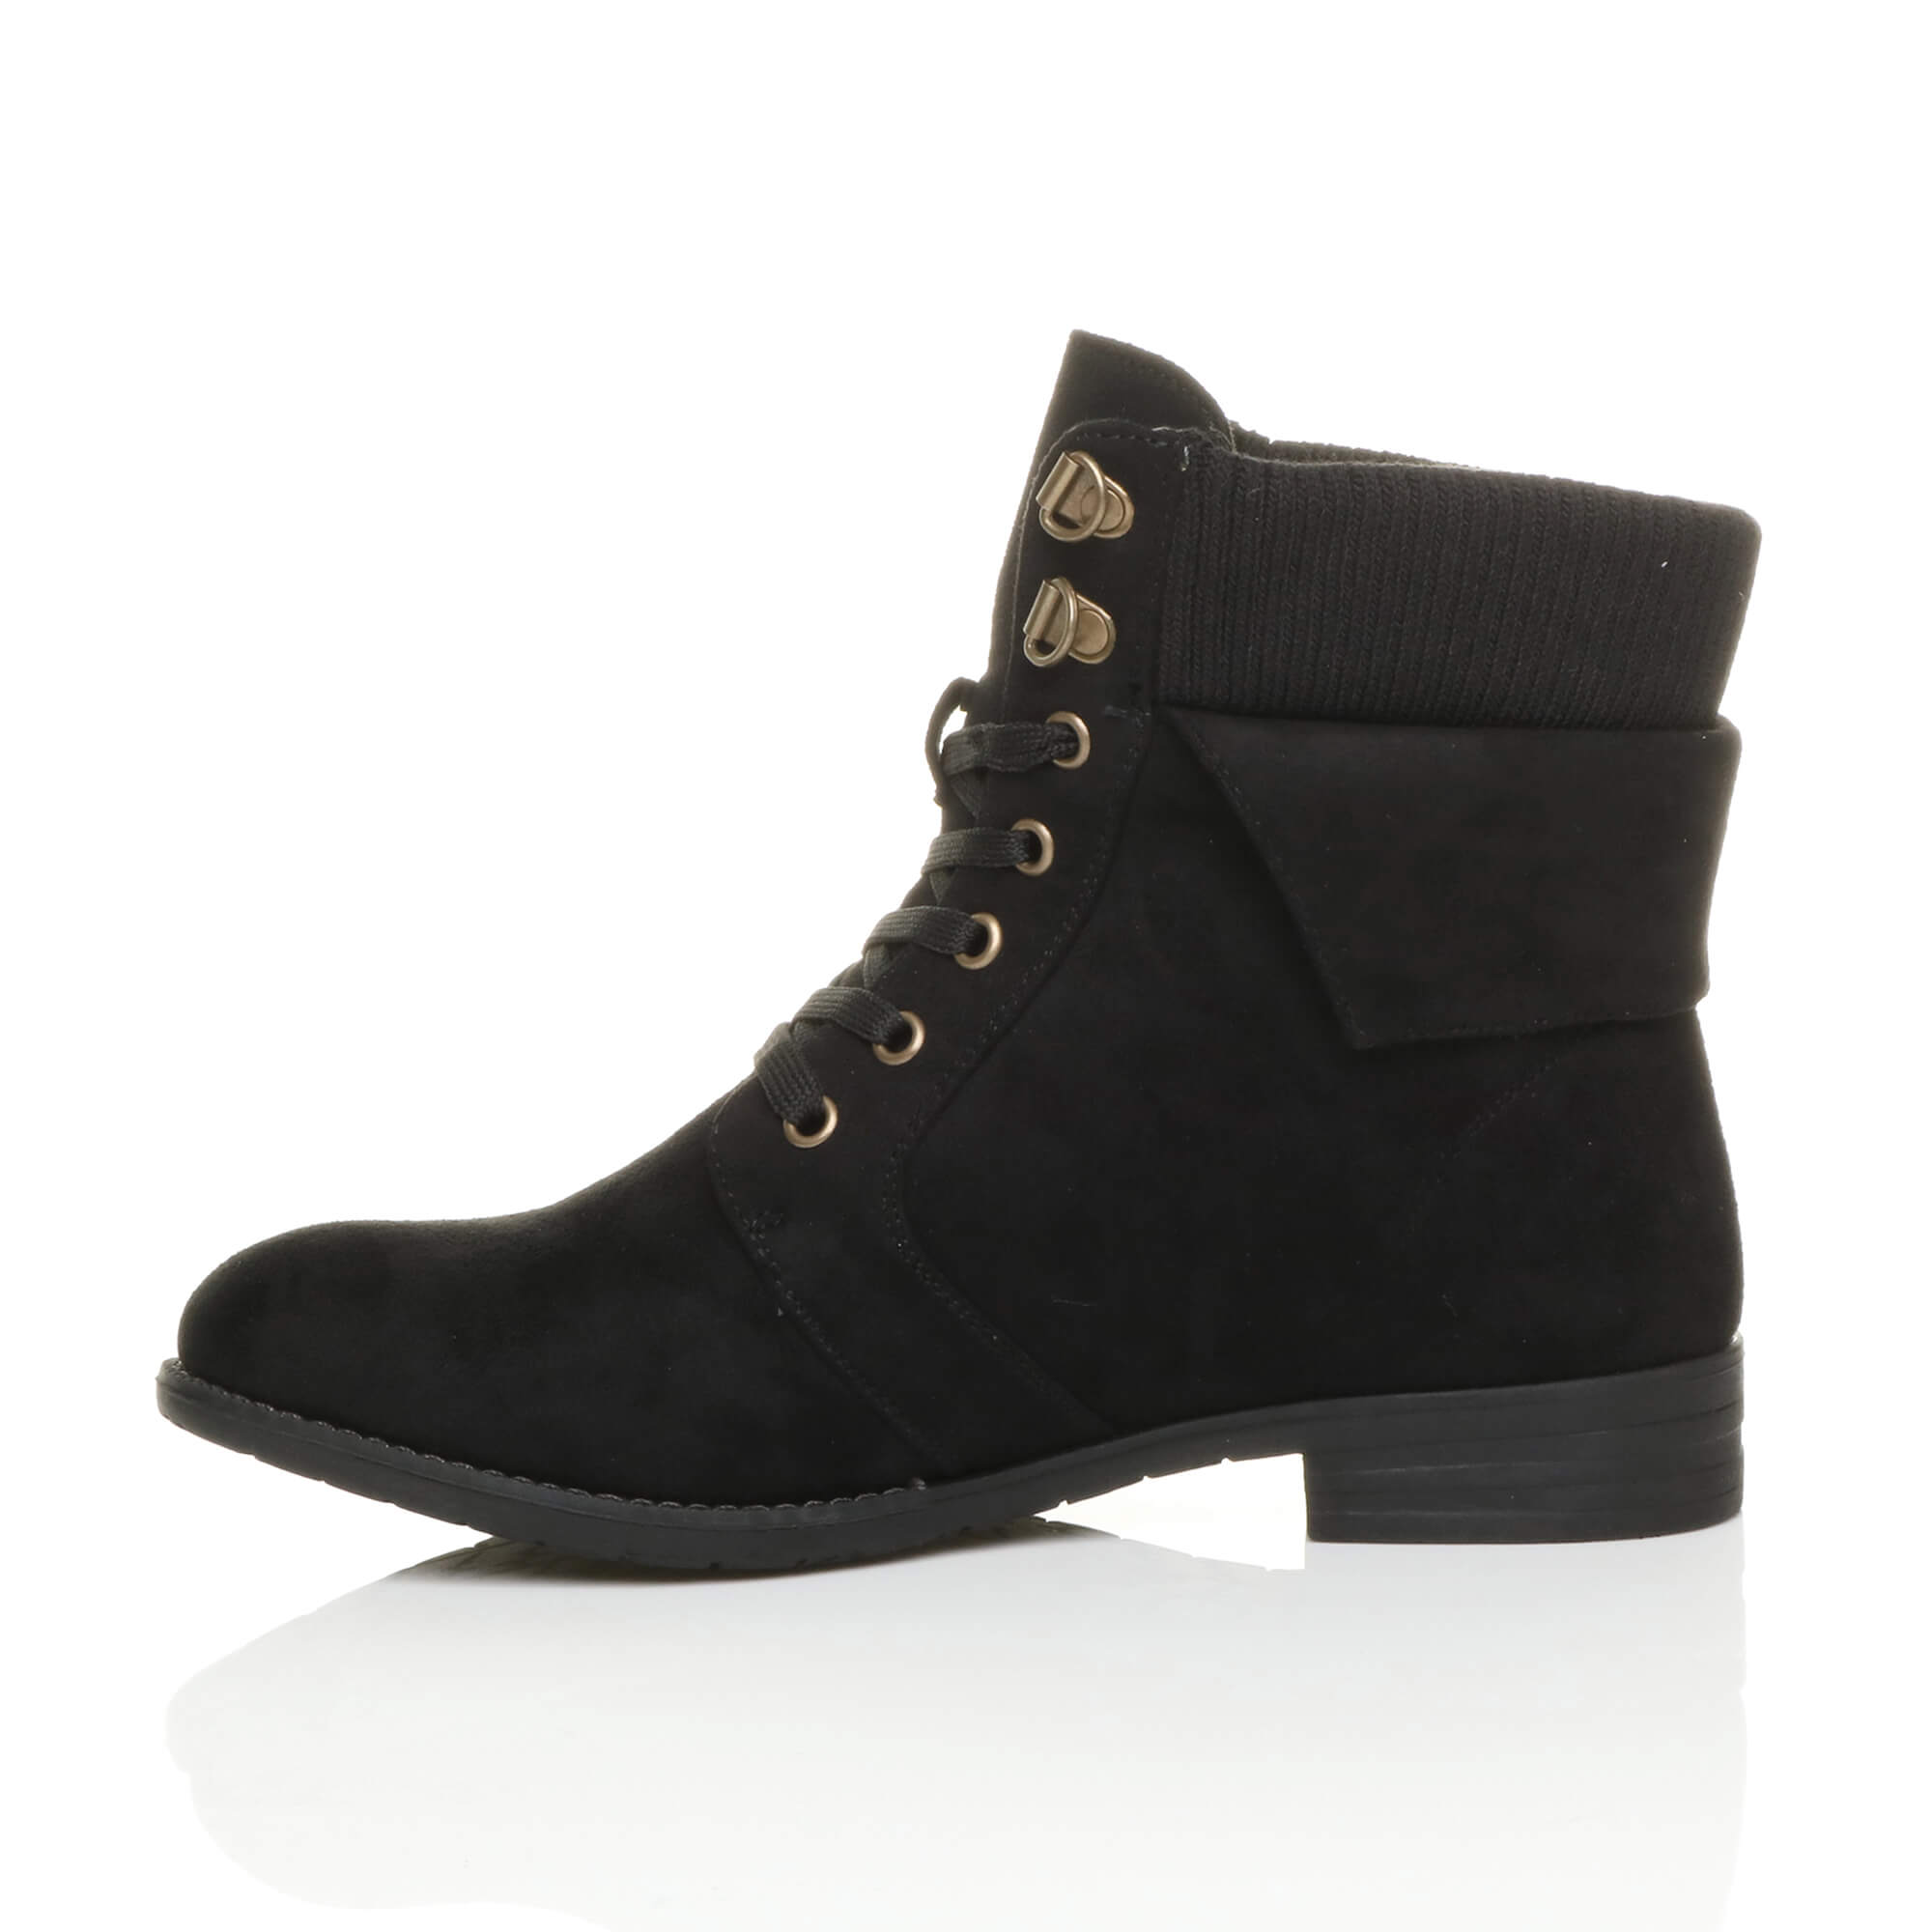 WOMENS-LOW-HEEL-LACE-UP-KNITTED-CUFF-ZIP-BIKER-COMBAT-ARMY-MILITARY-ANKLE-BOOTS